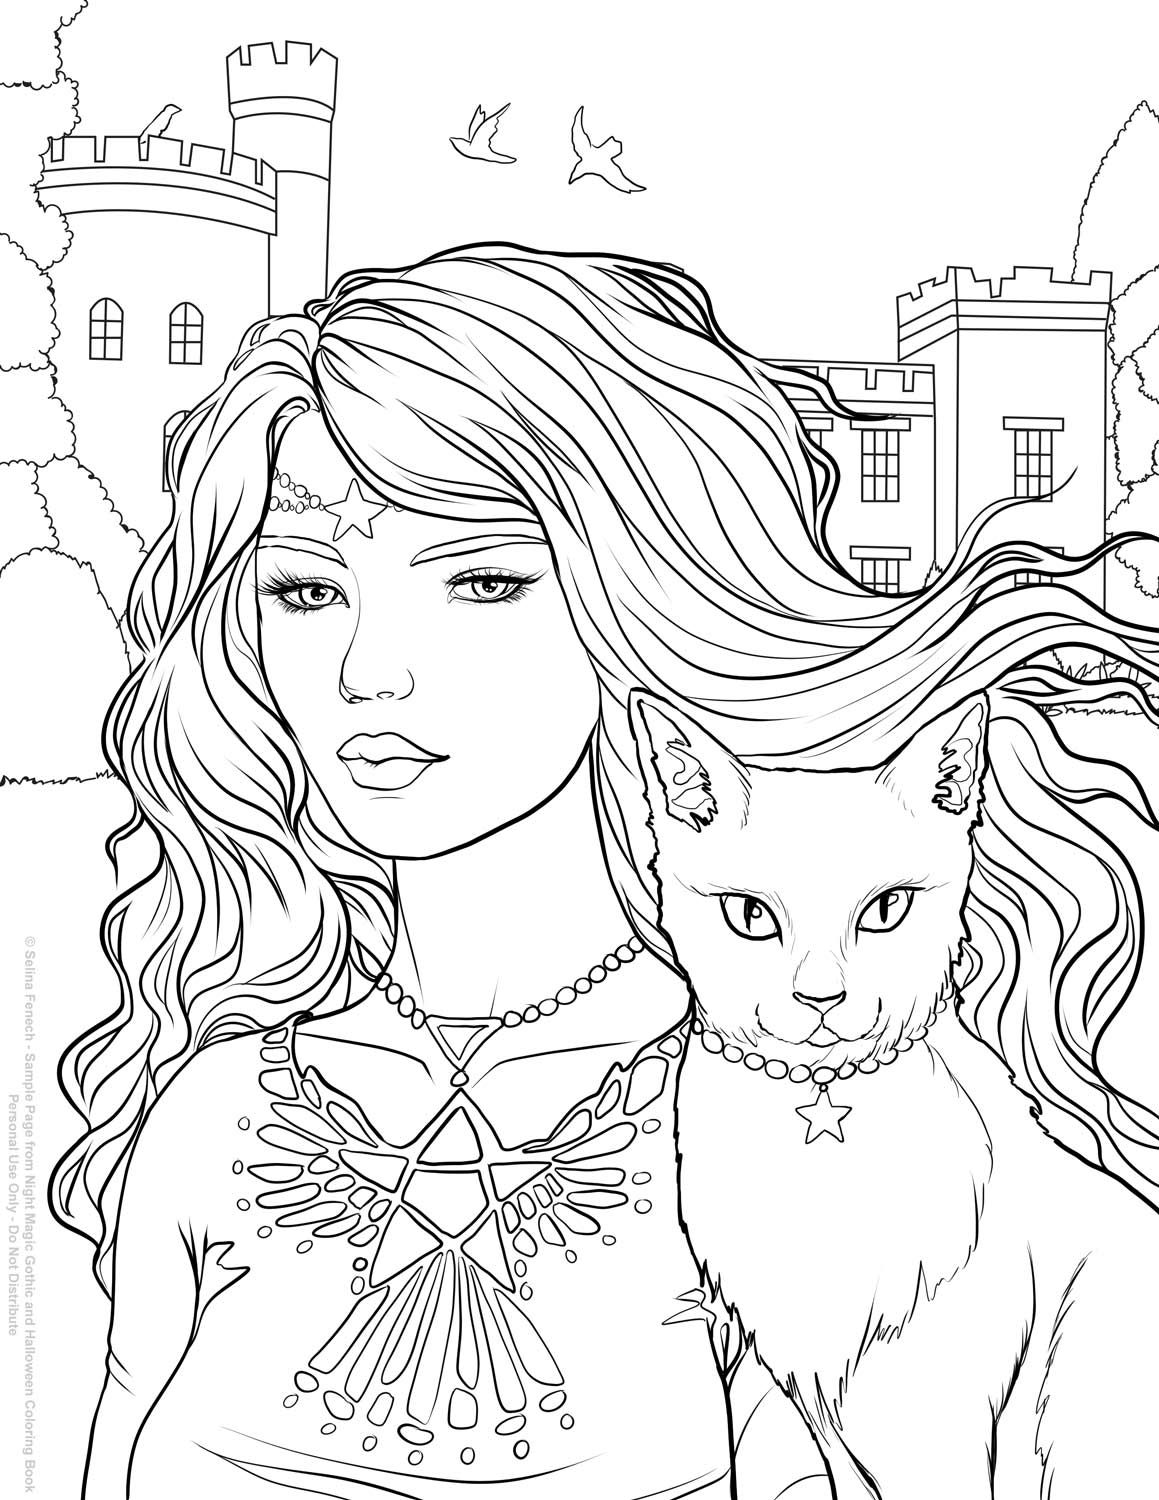 realistic halloween coloring pages | Selina Fenech halloween coloring page | Witch coloring ...